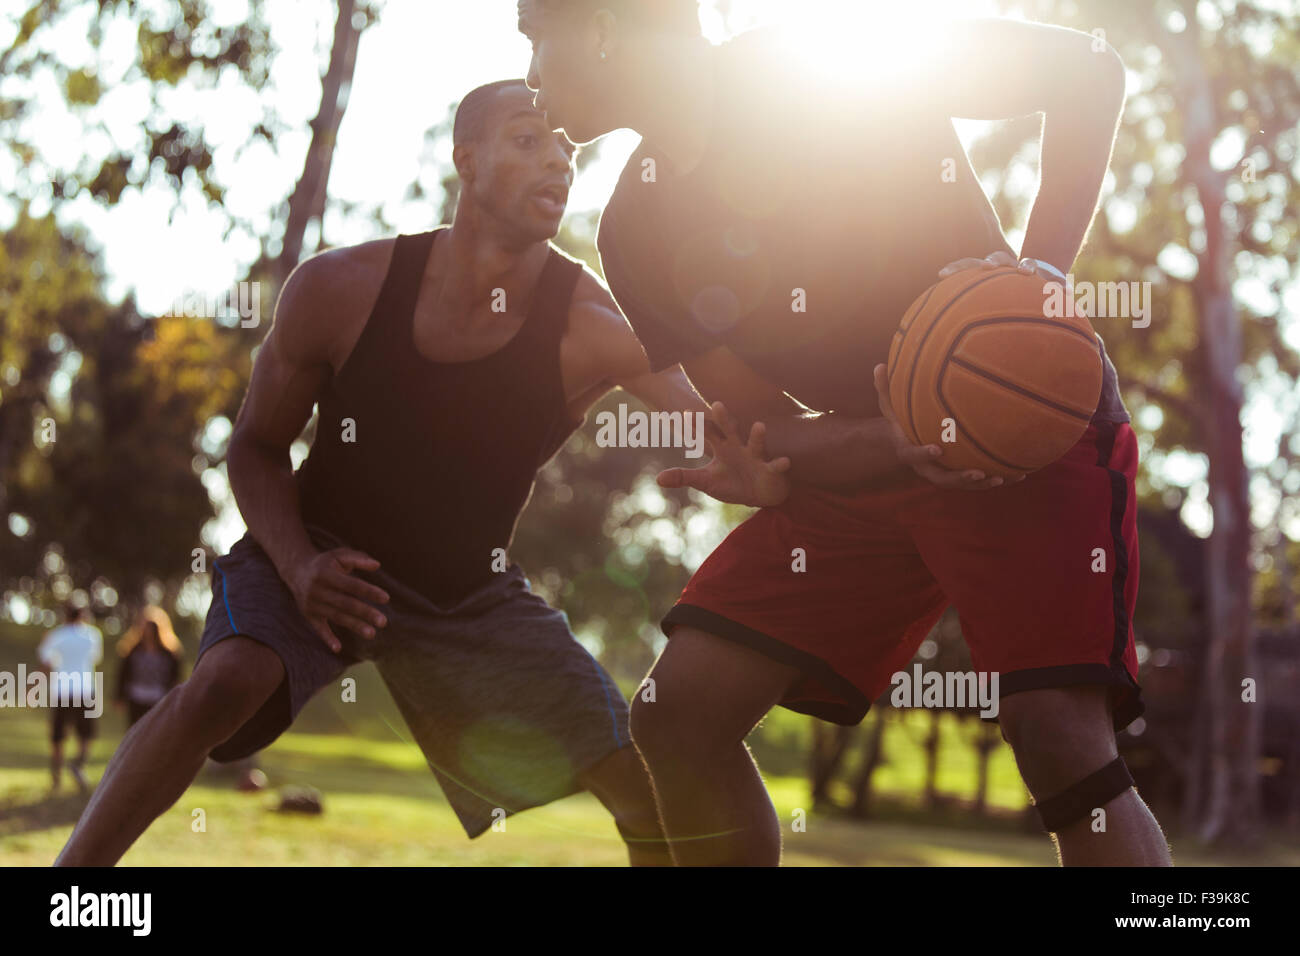 Two young men playing basketball in the park at sunset Stock Photo